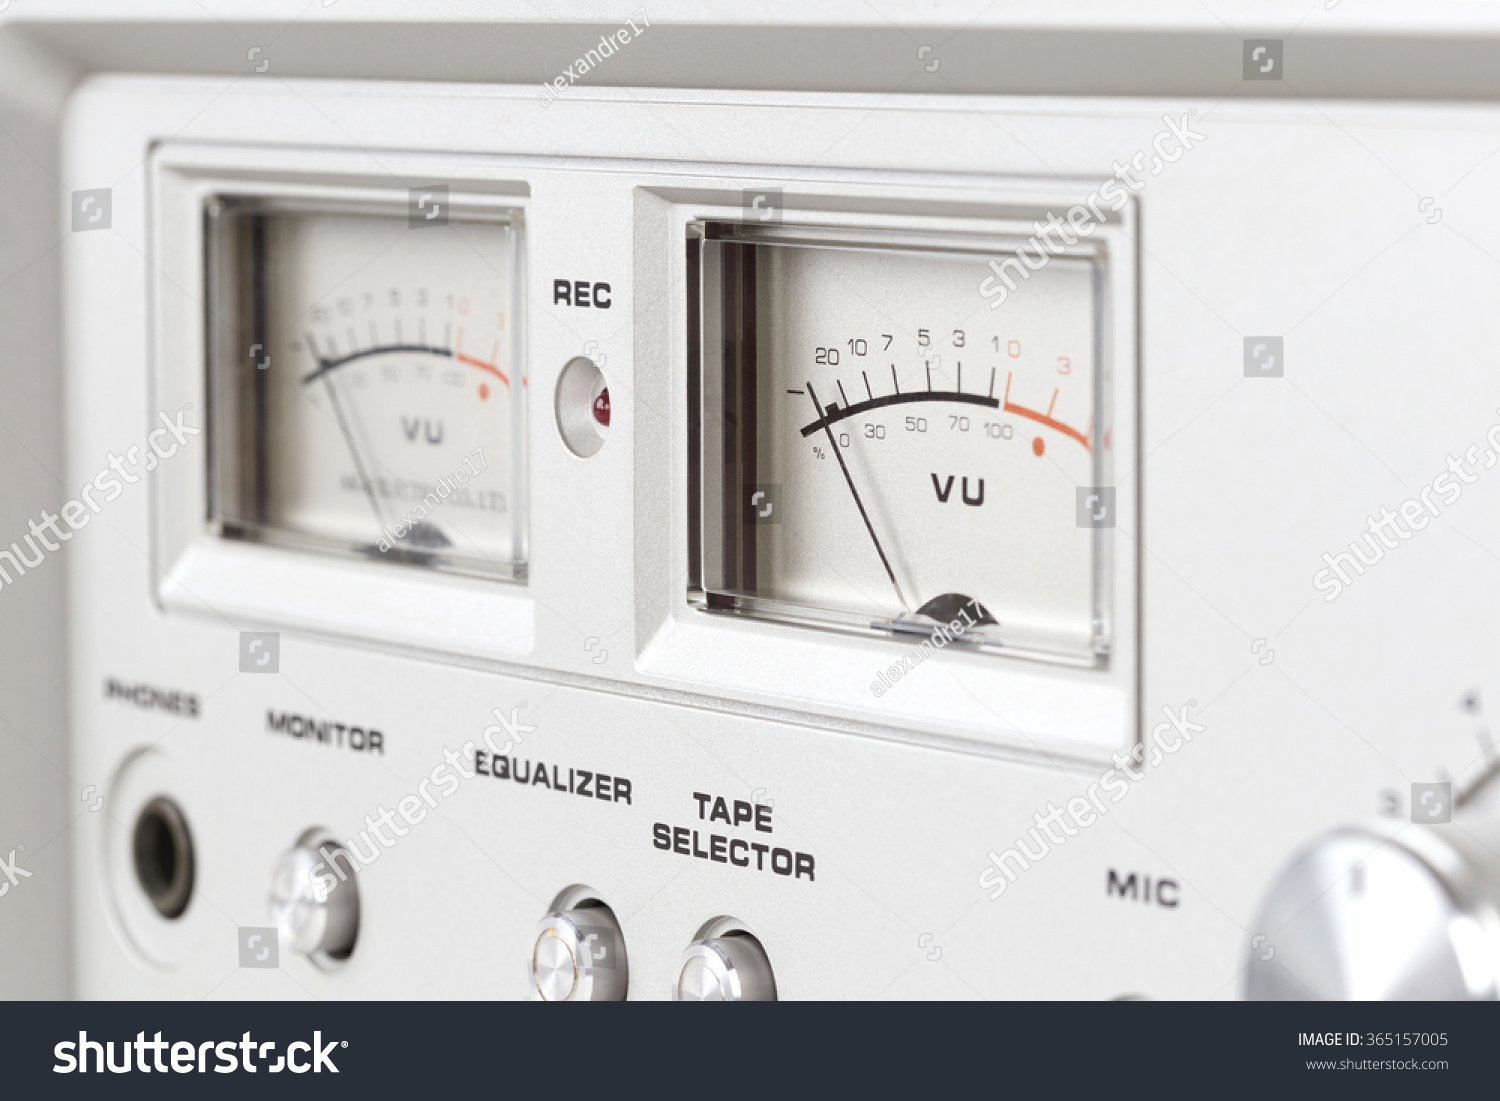 Control Panel Of Old Reel Tape Recorder Vu Meter Ez Canvas 3